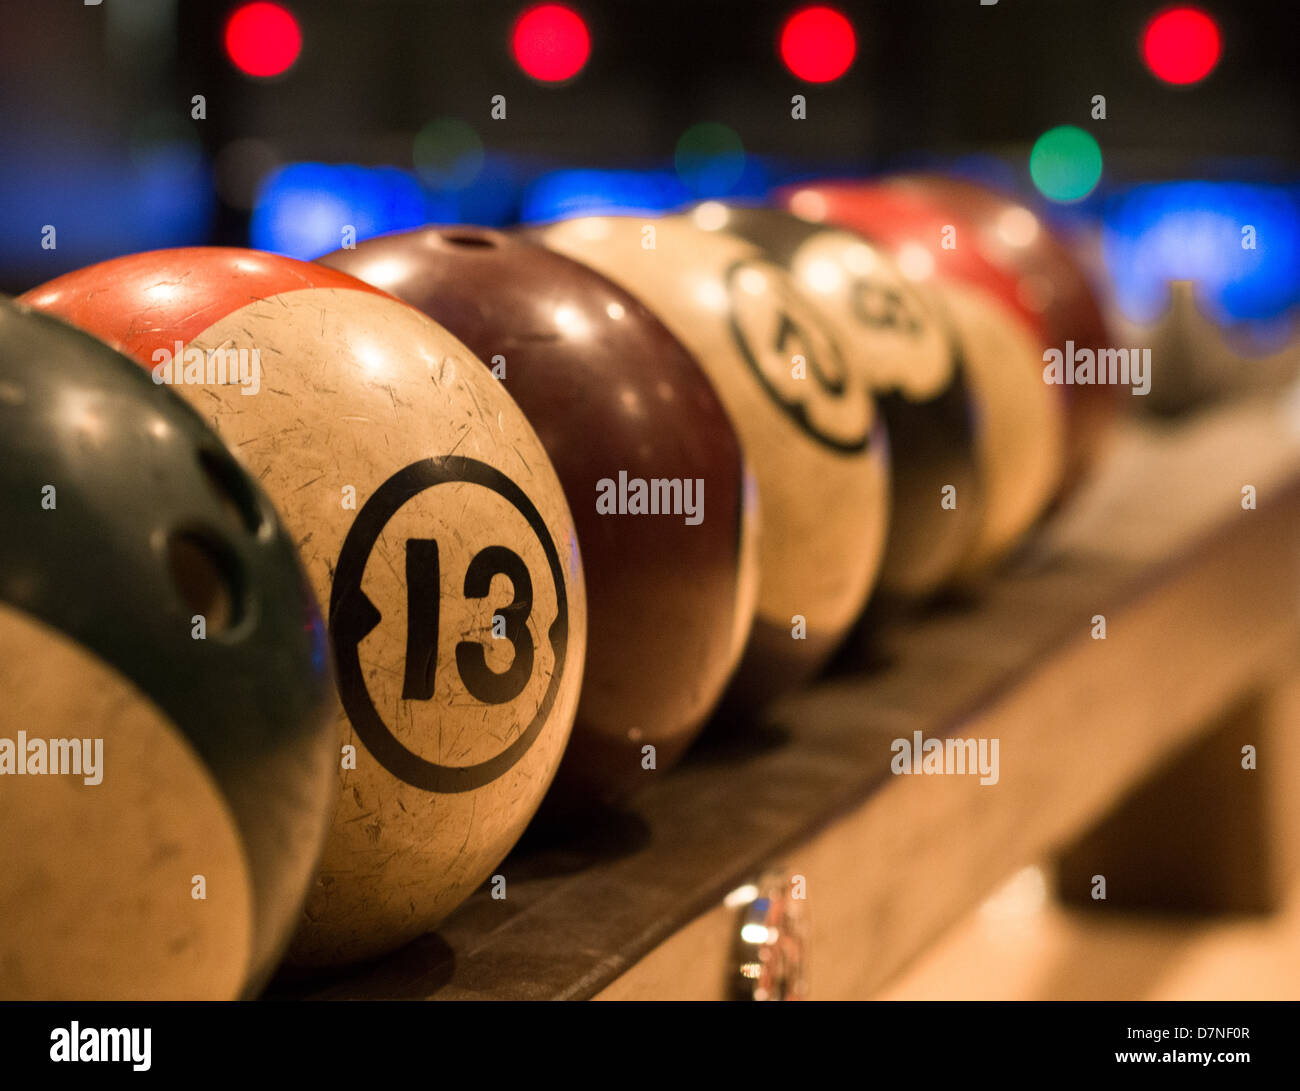 Retro style bowling balls racked and ready to play at the Goodnight bowling Alley in Austin, Texas - Stock Image